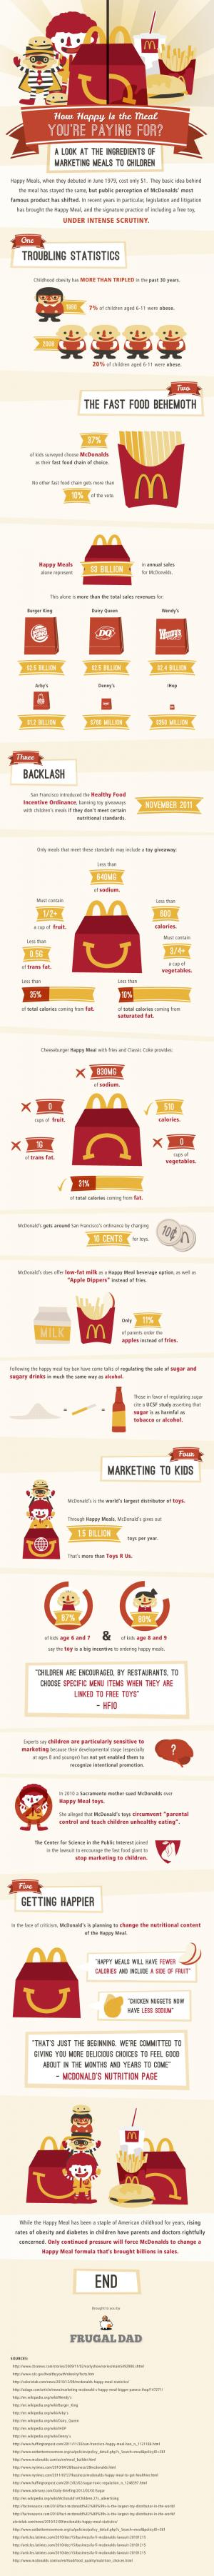 How Happy is a Happy Meal?